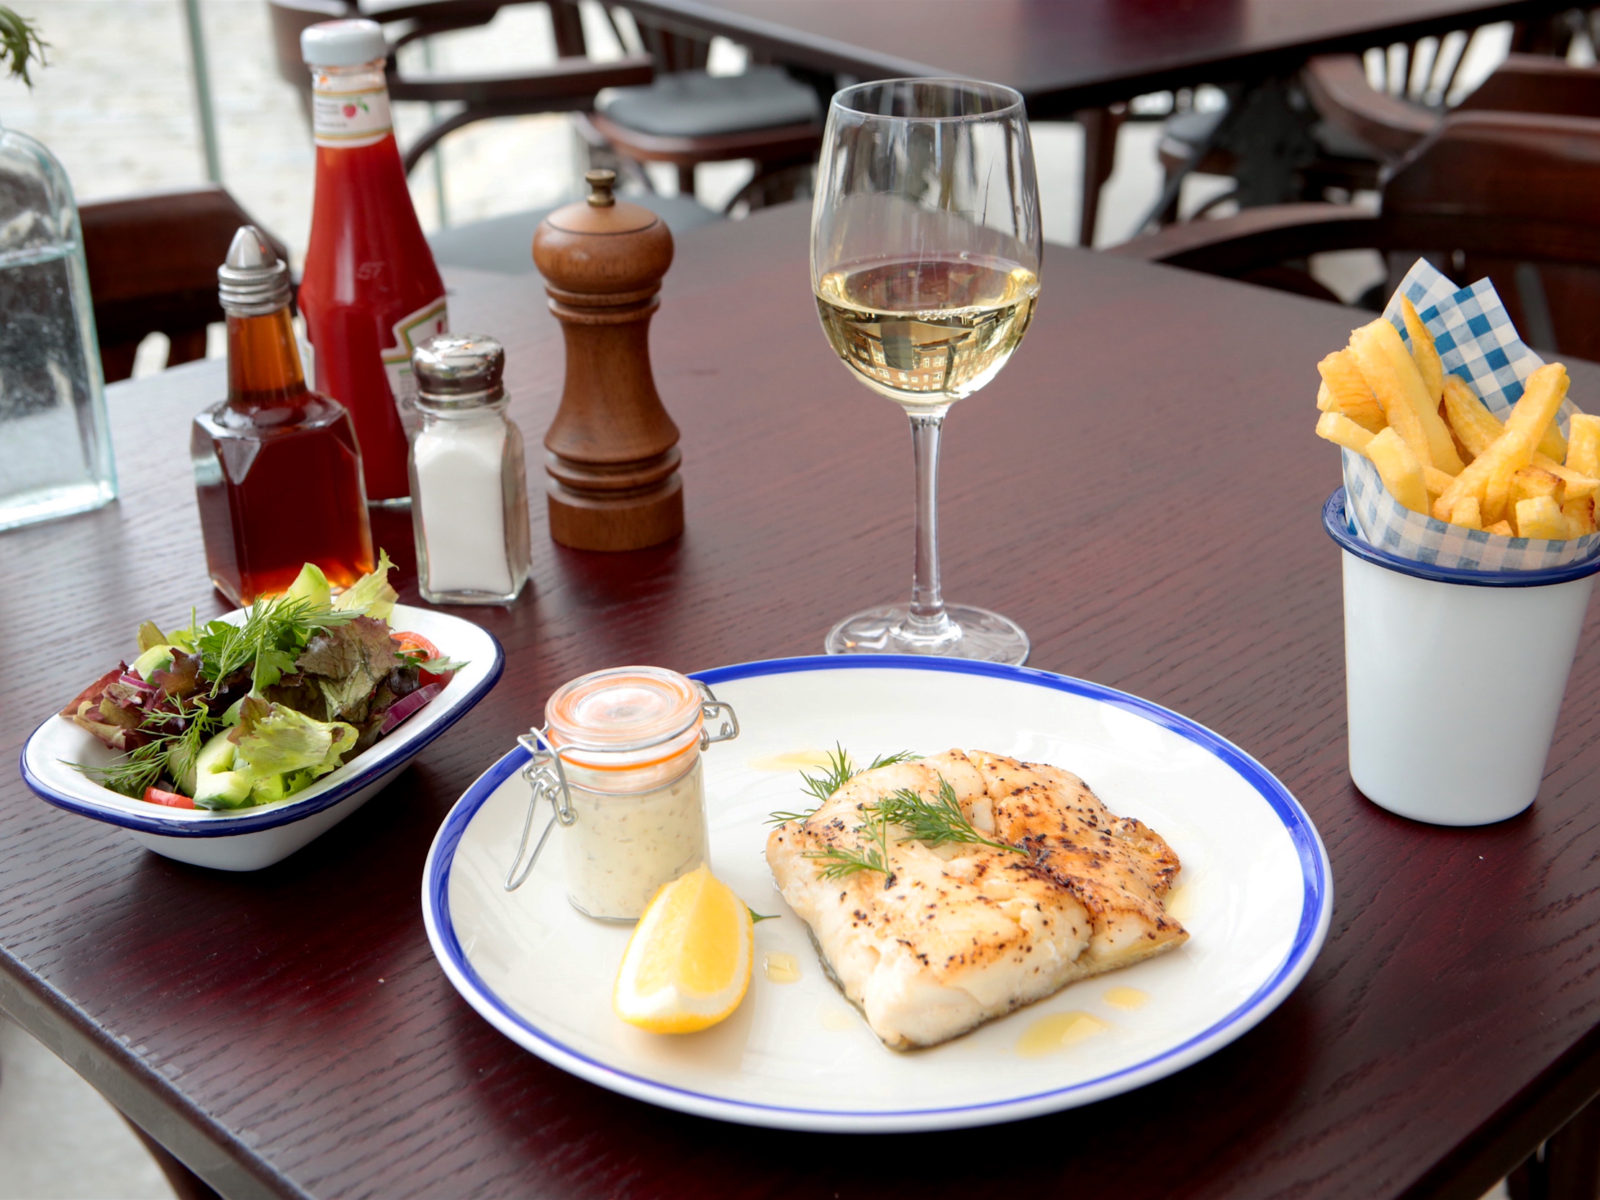 Delicious fish paired with one of our tasty whites.